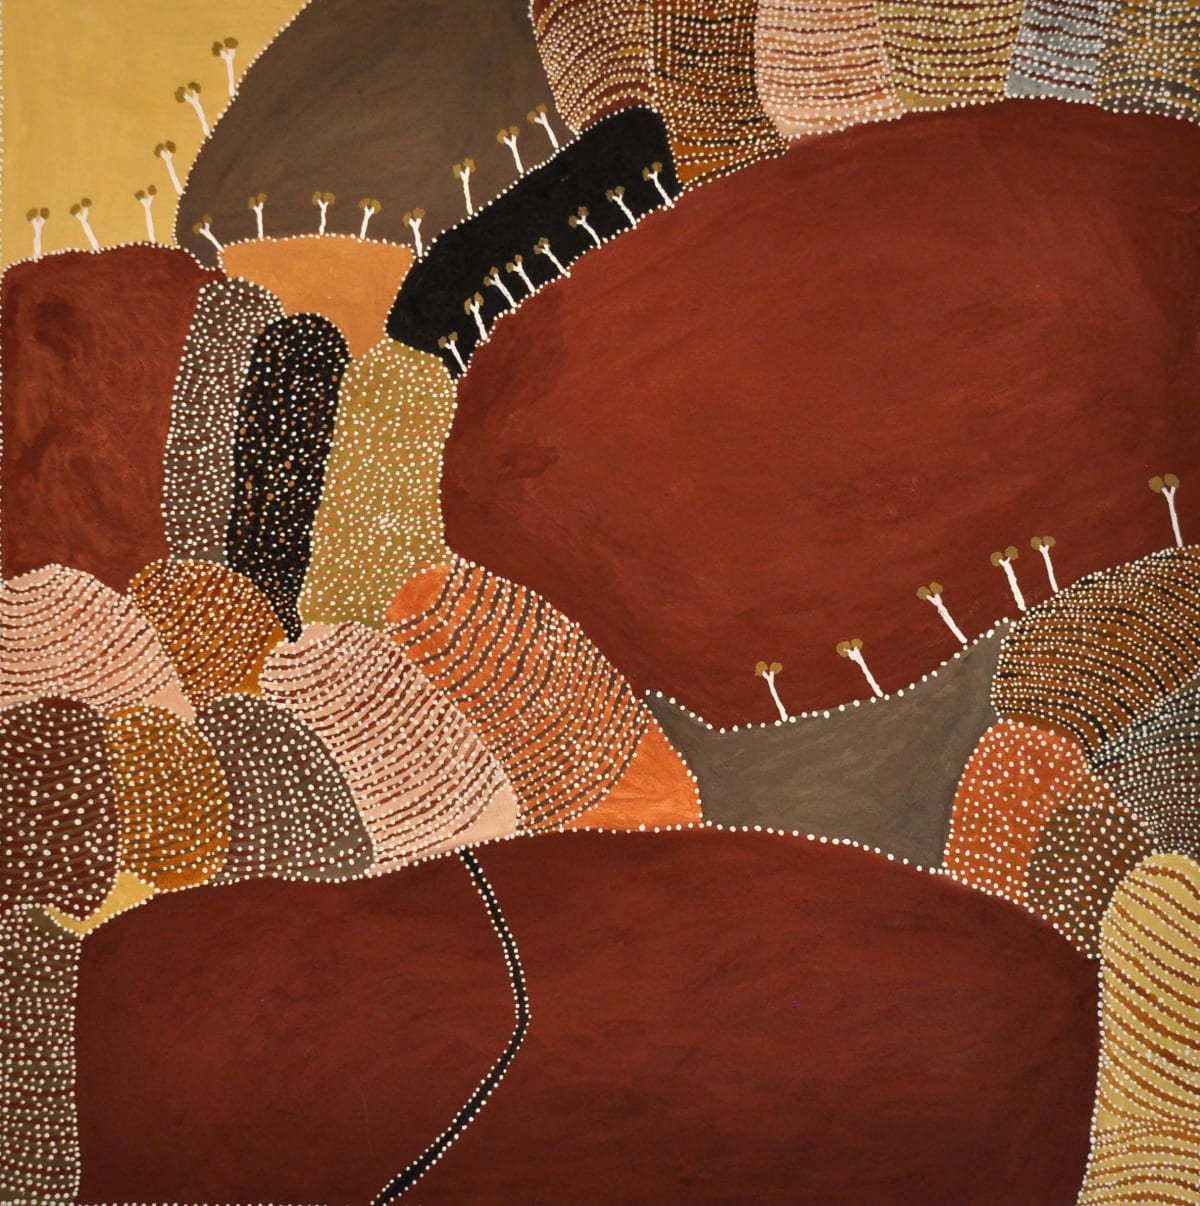 Patrick Mung Mung Gairrawarran, Ground Sugarbag natural ochre and pigments on canvas 150 x 150 cm